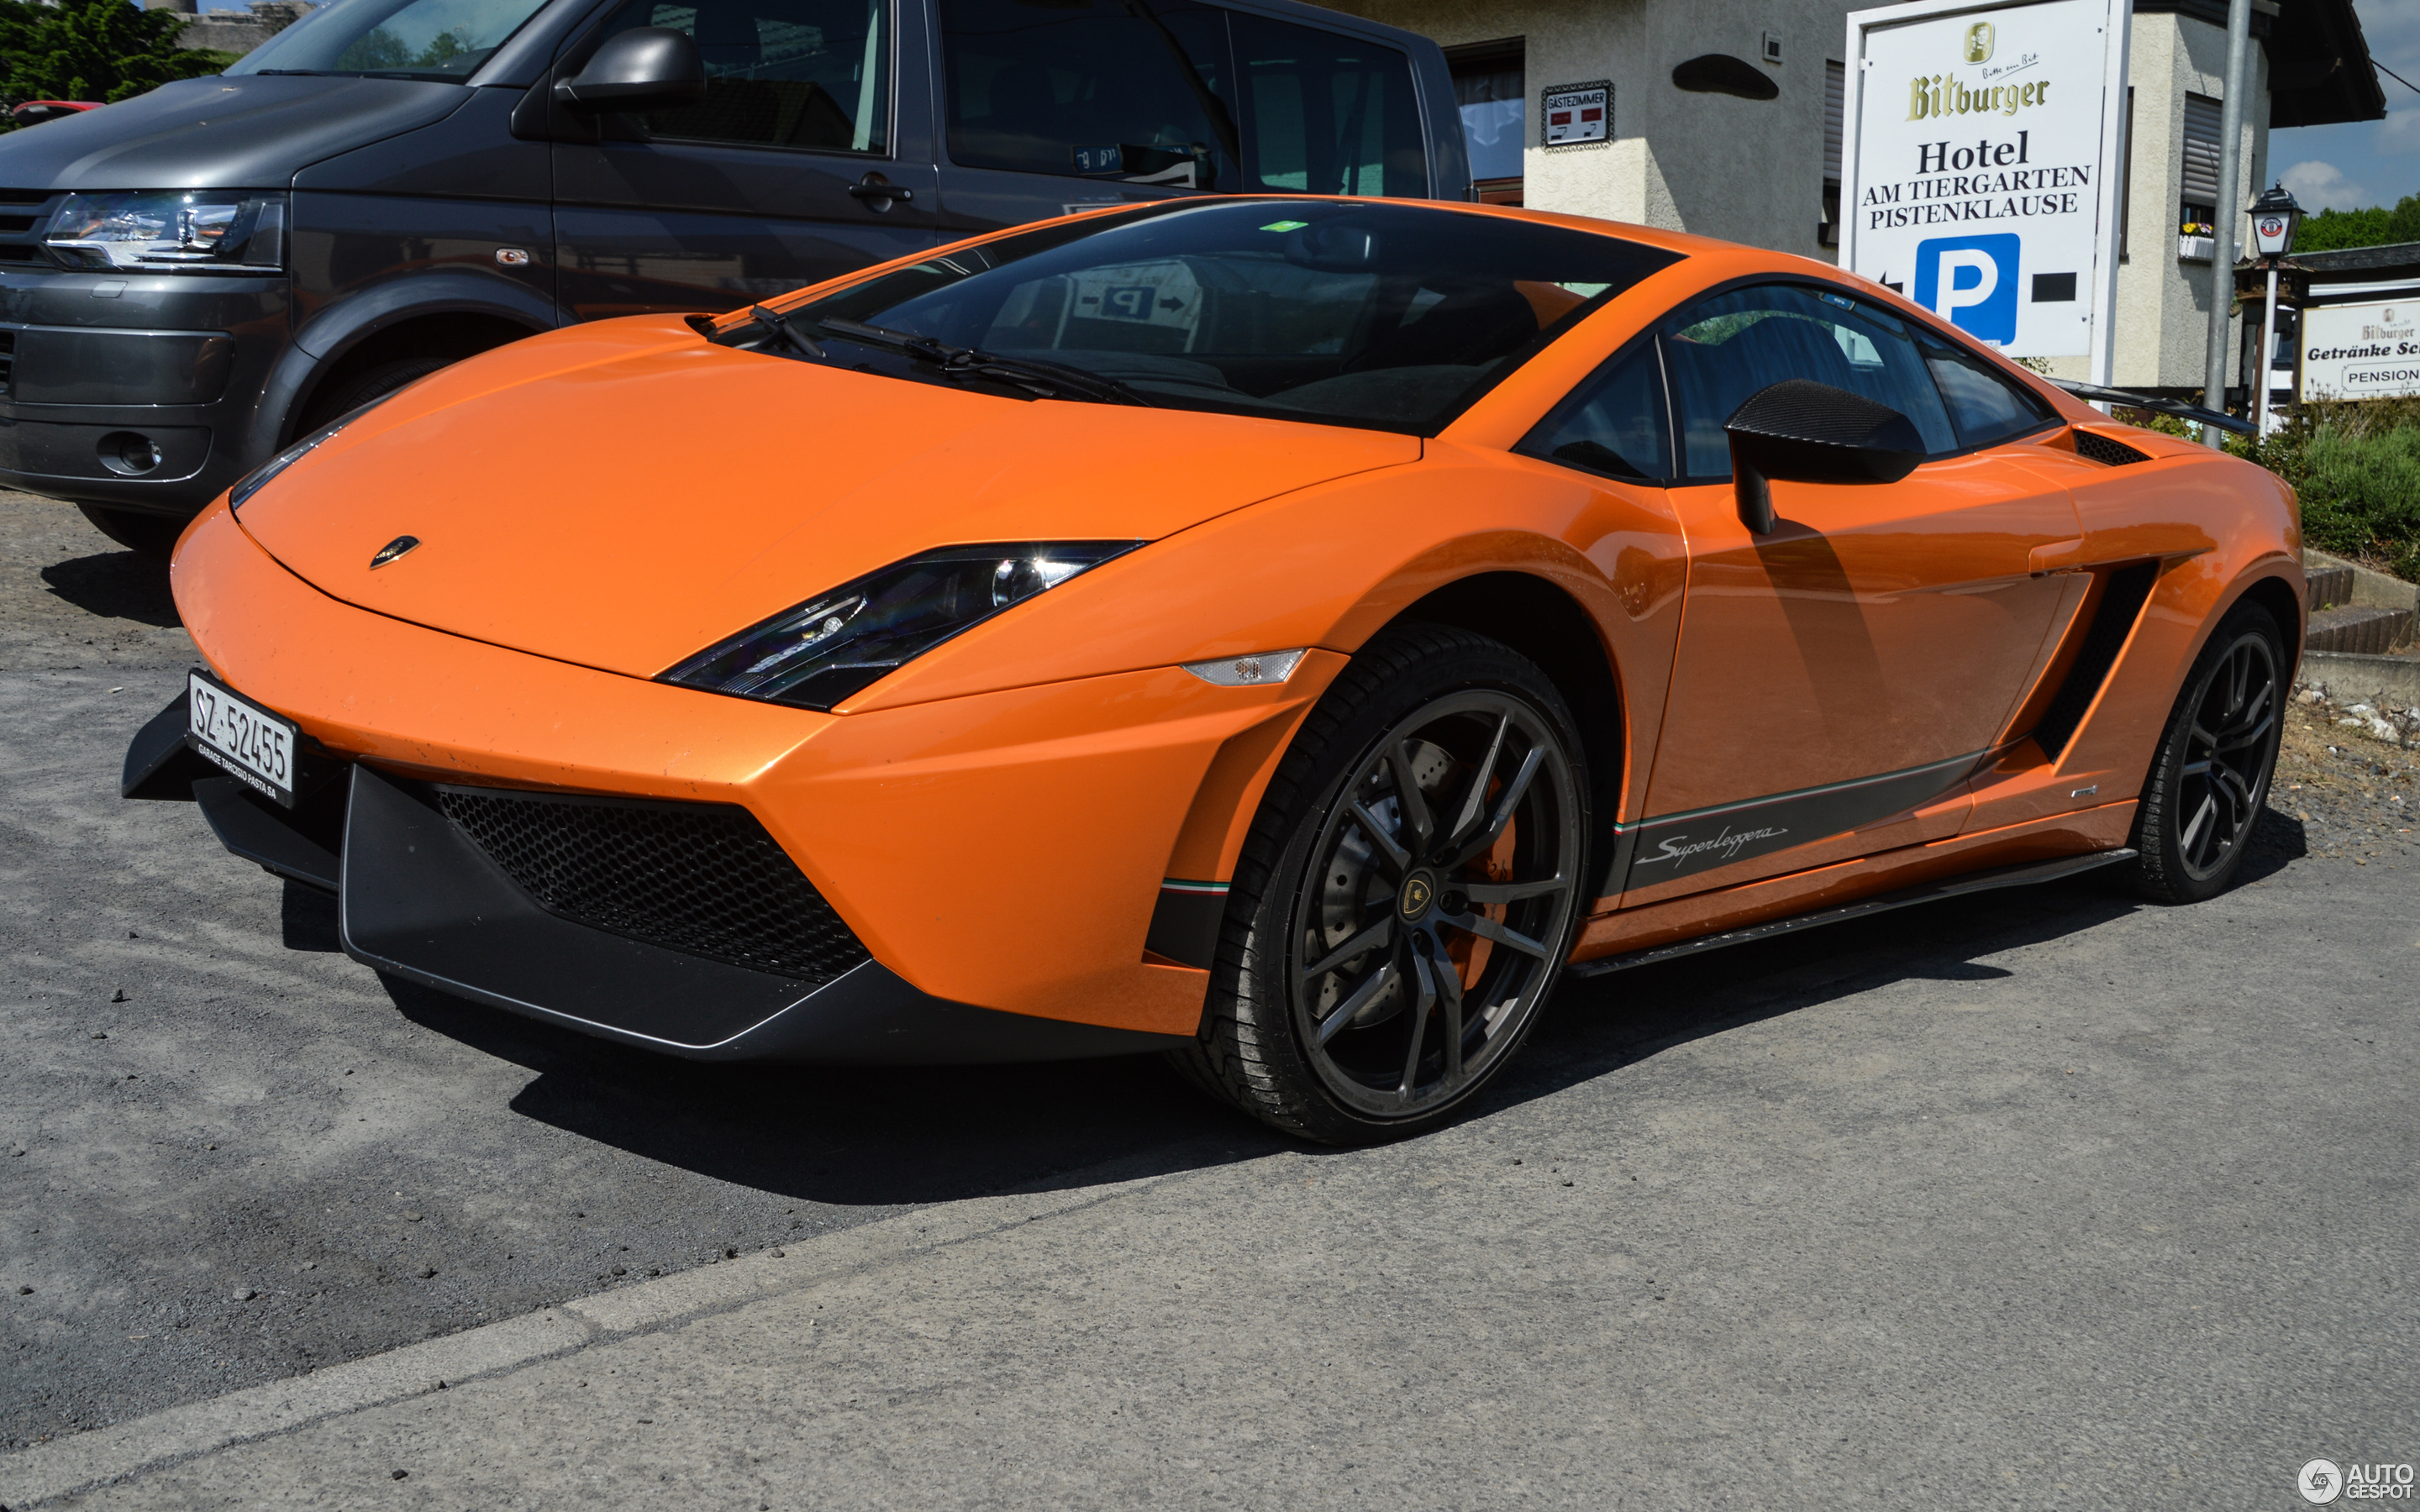 Lamborghini Gallardo LP570 4 Superleggera